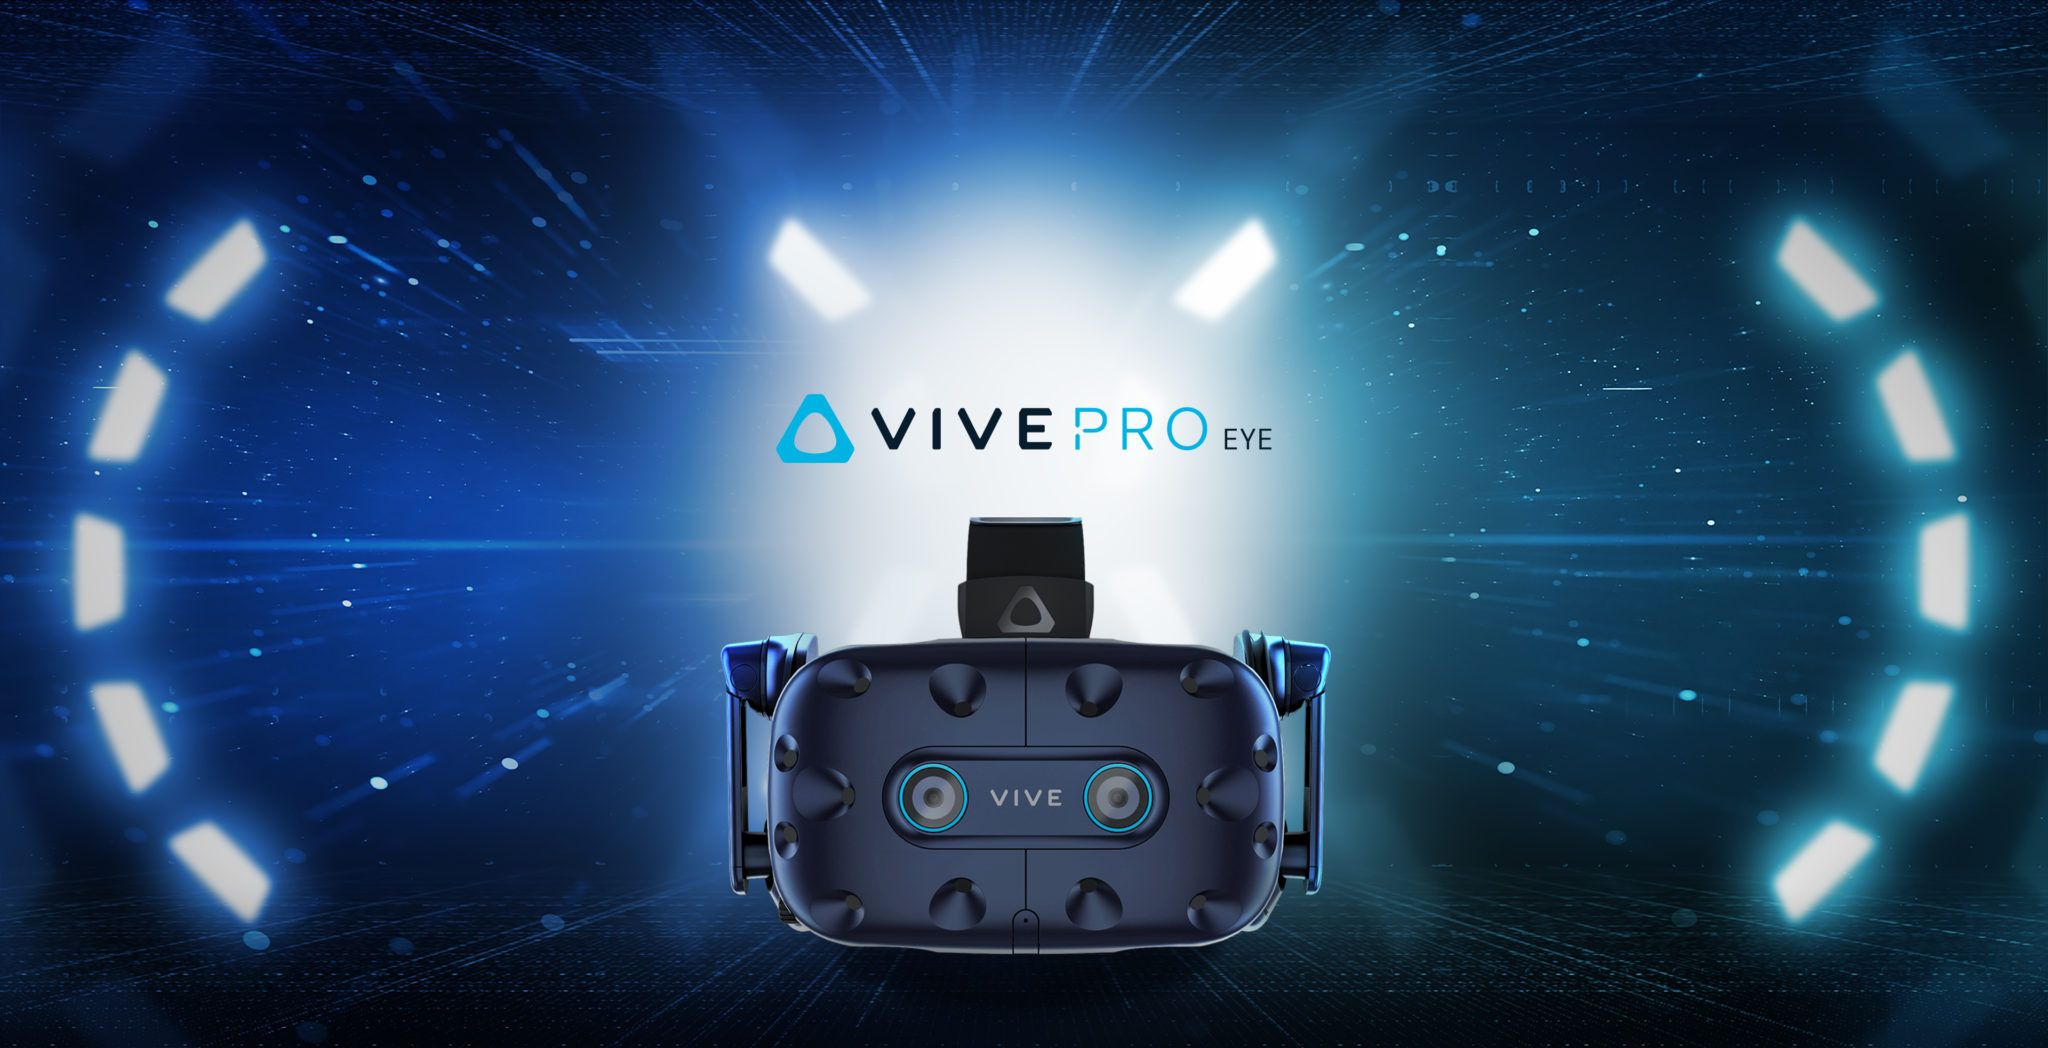 Htc Vive Pro Eye Goes On Sale In Europe Starting From 1499 Dr Wong Emporium Of Tings Web Magazine Virtual Reality Virtual Reality Headset Vr Headset